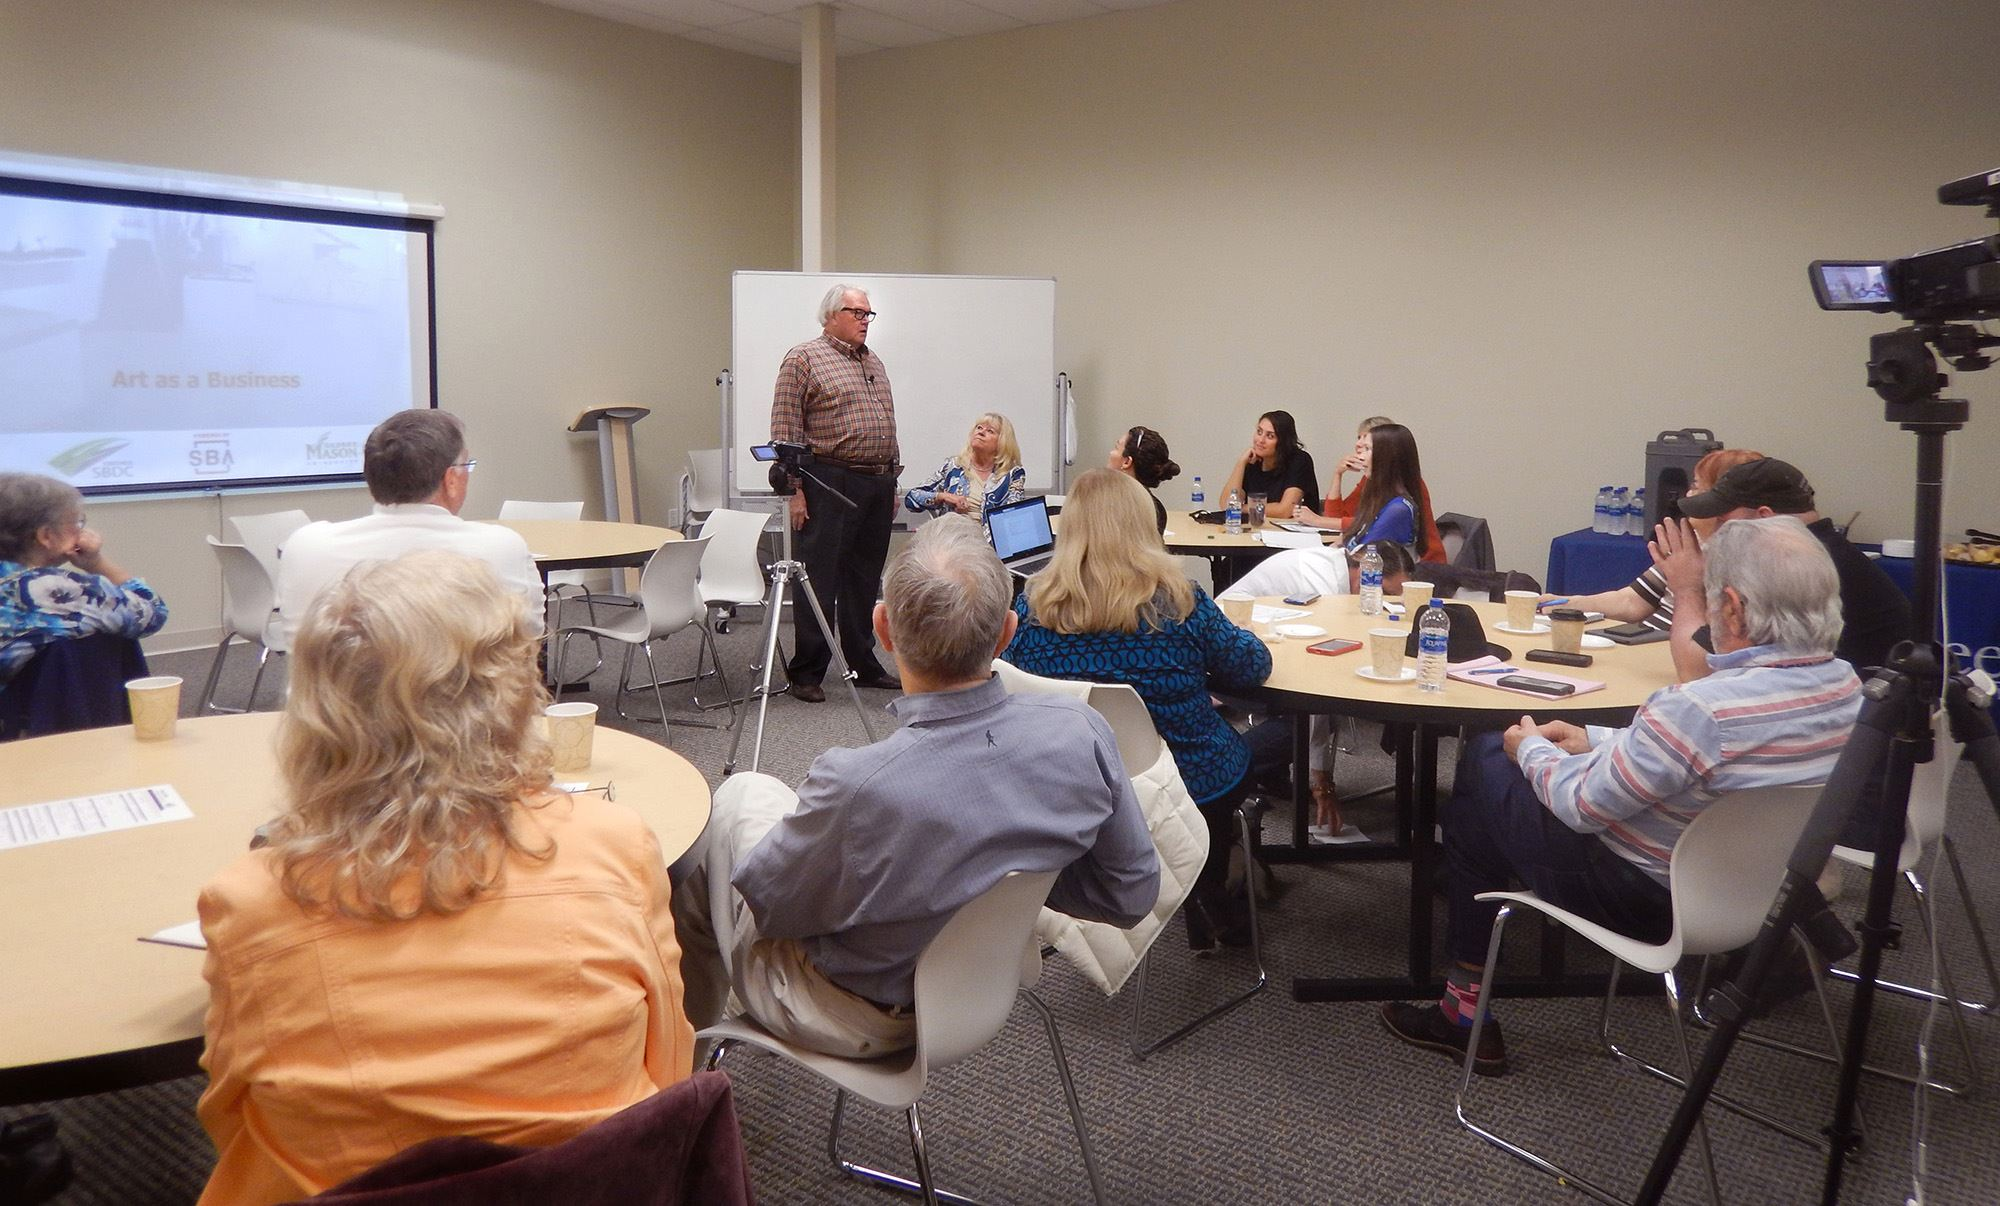 Art as a Business Workshop speaker Marc Willson shares tips for artists